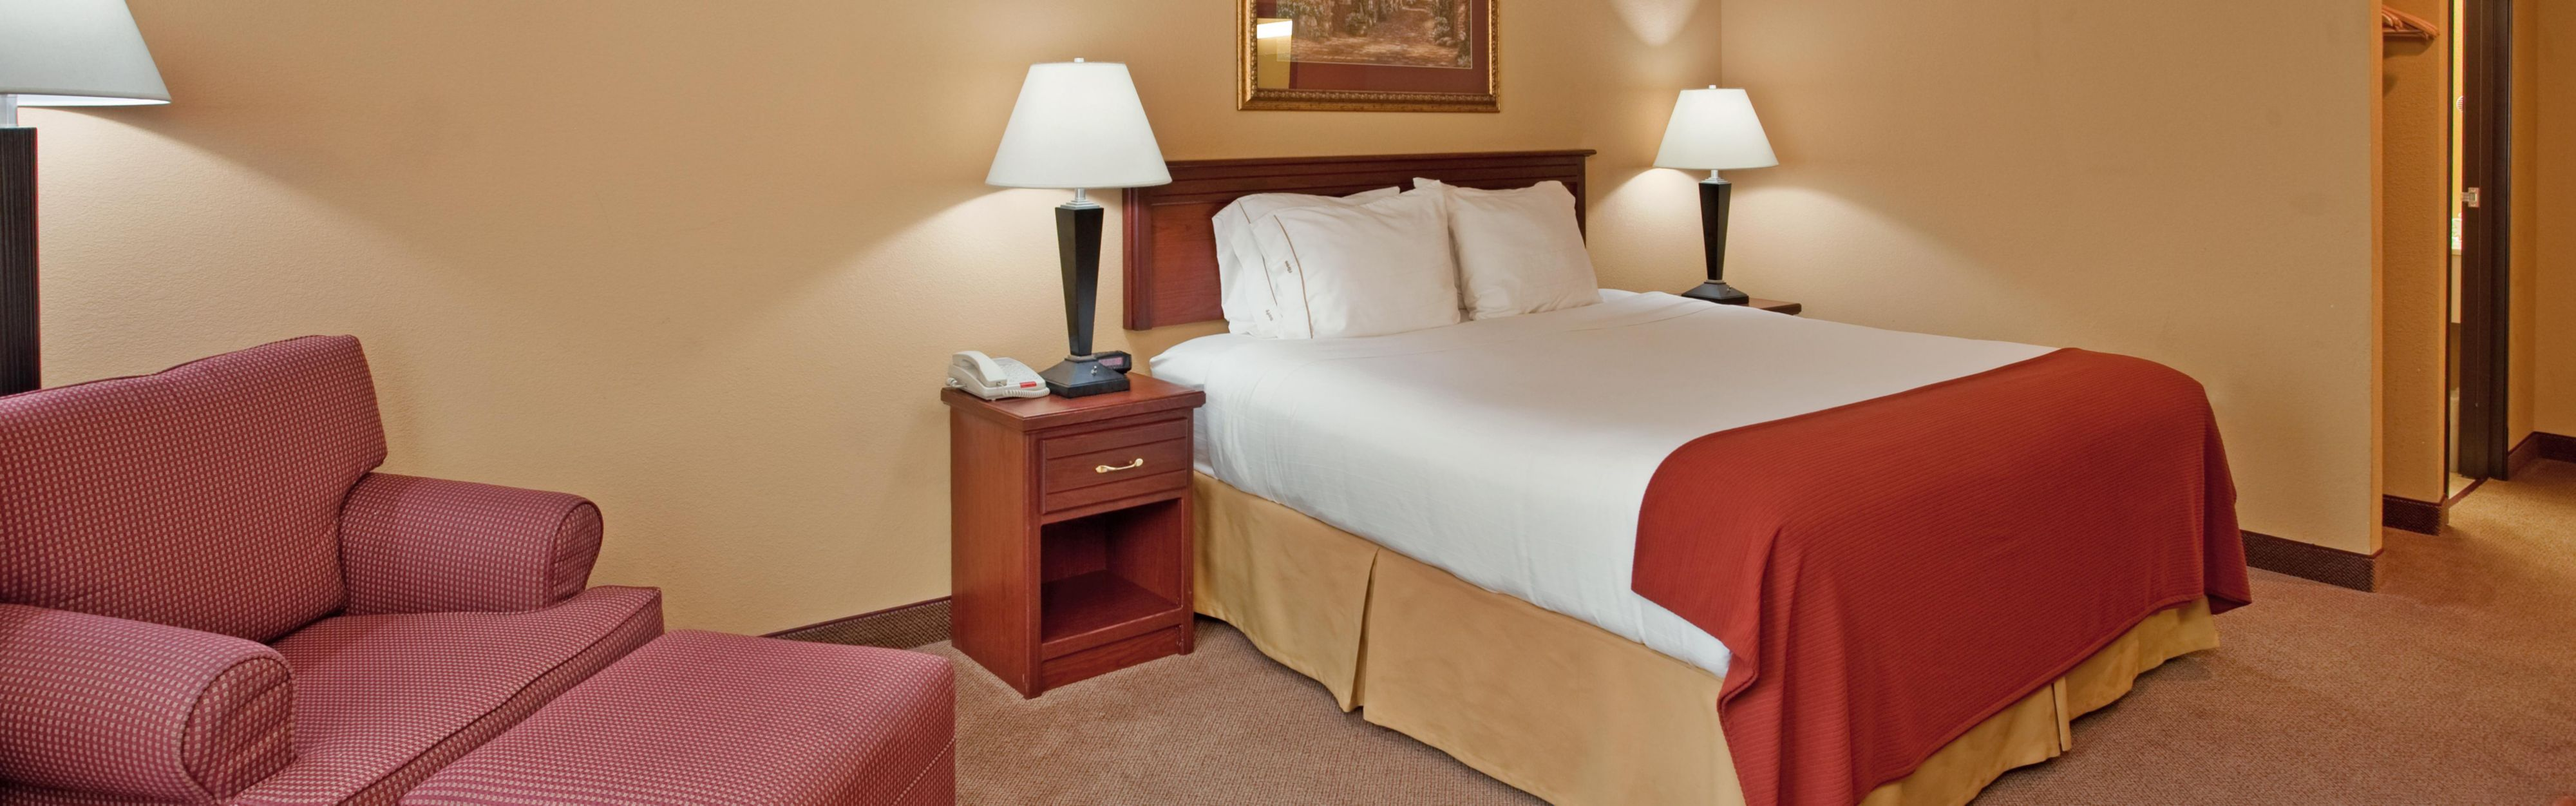 Holiday Inn Express & Suites Maryville image 1